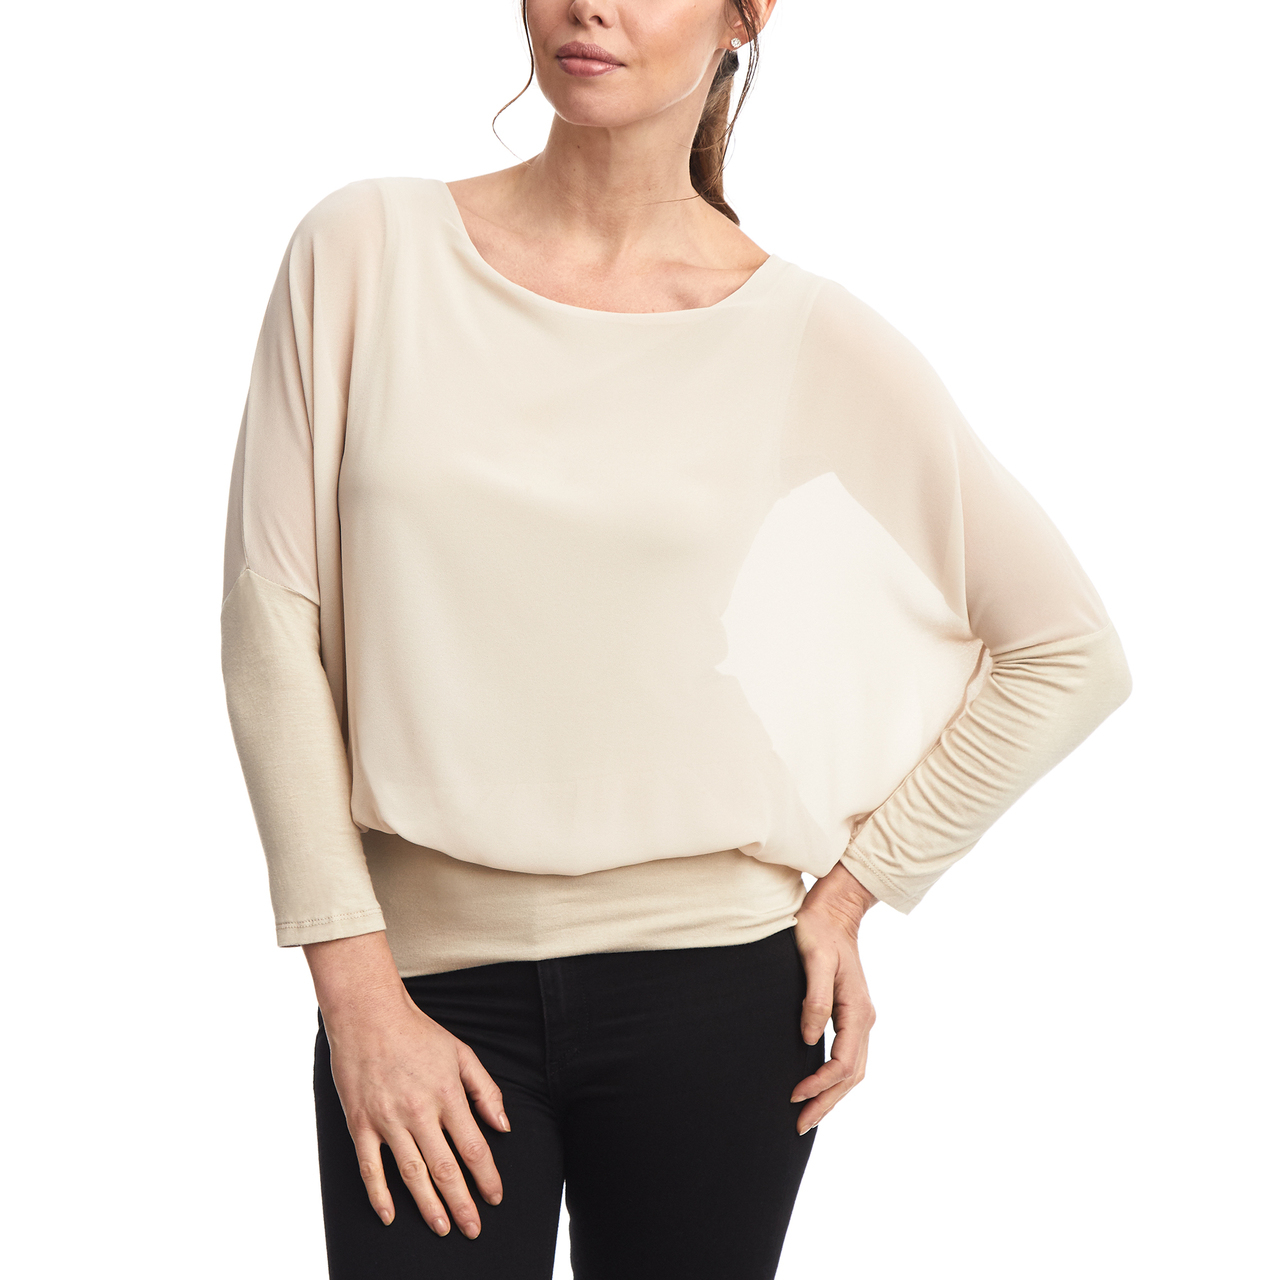 Dolman Long Sleeve Chiffon Top with Banded Knit Bottom in New Khaki